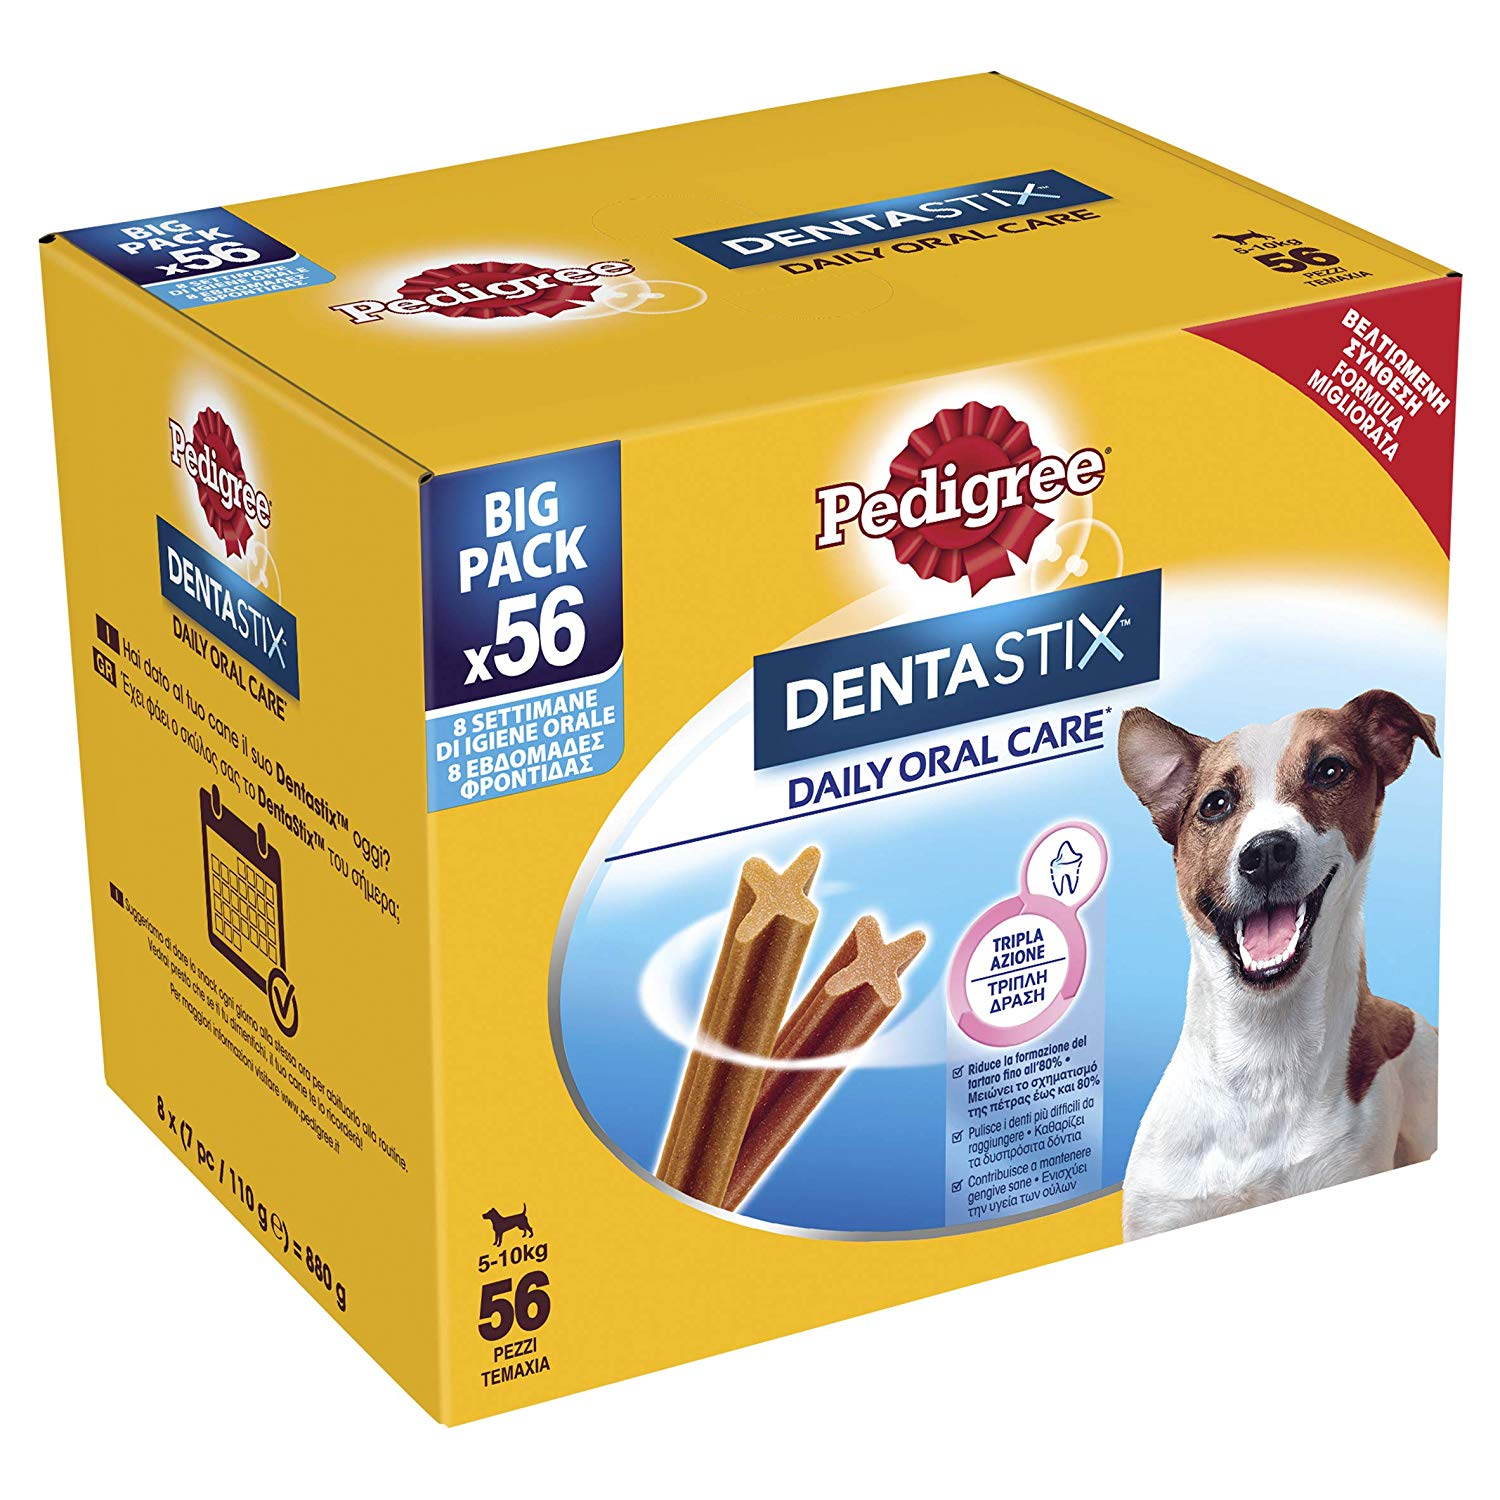 DENTASTIX, Pedigree